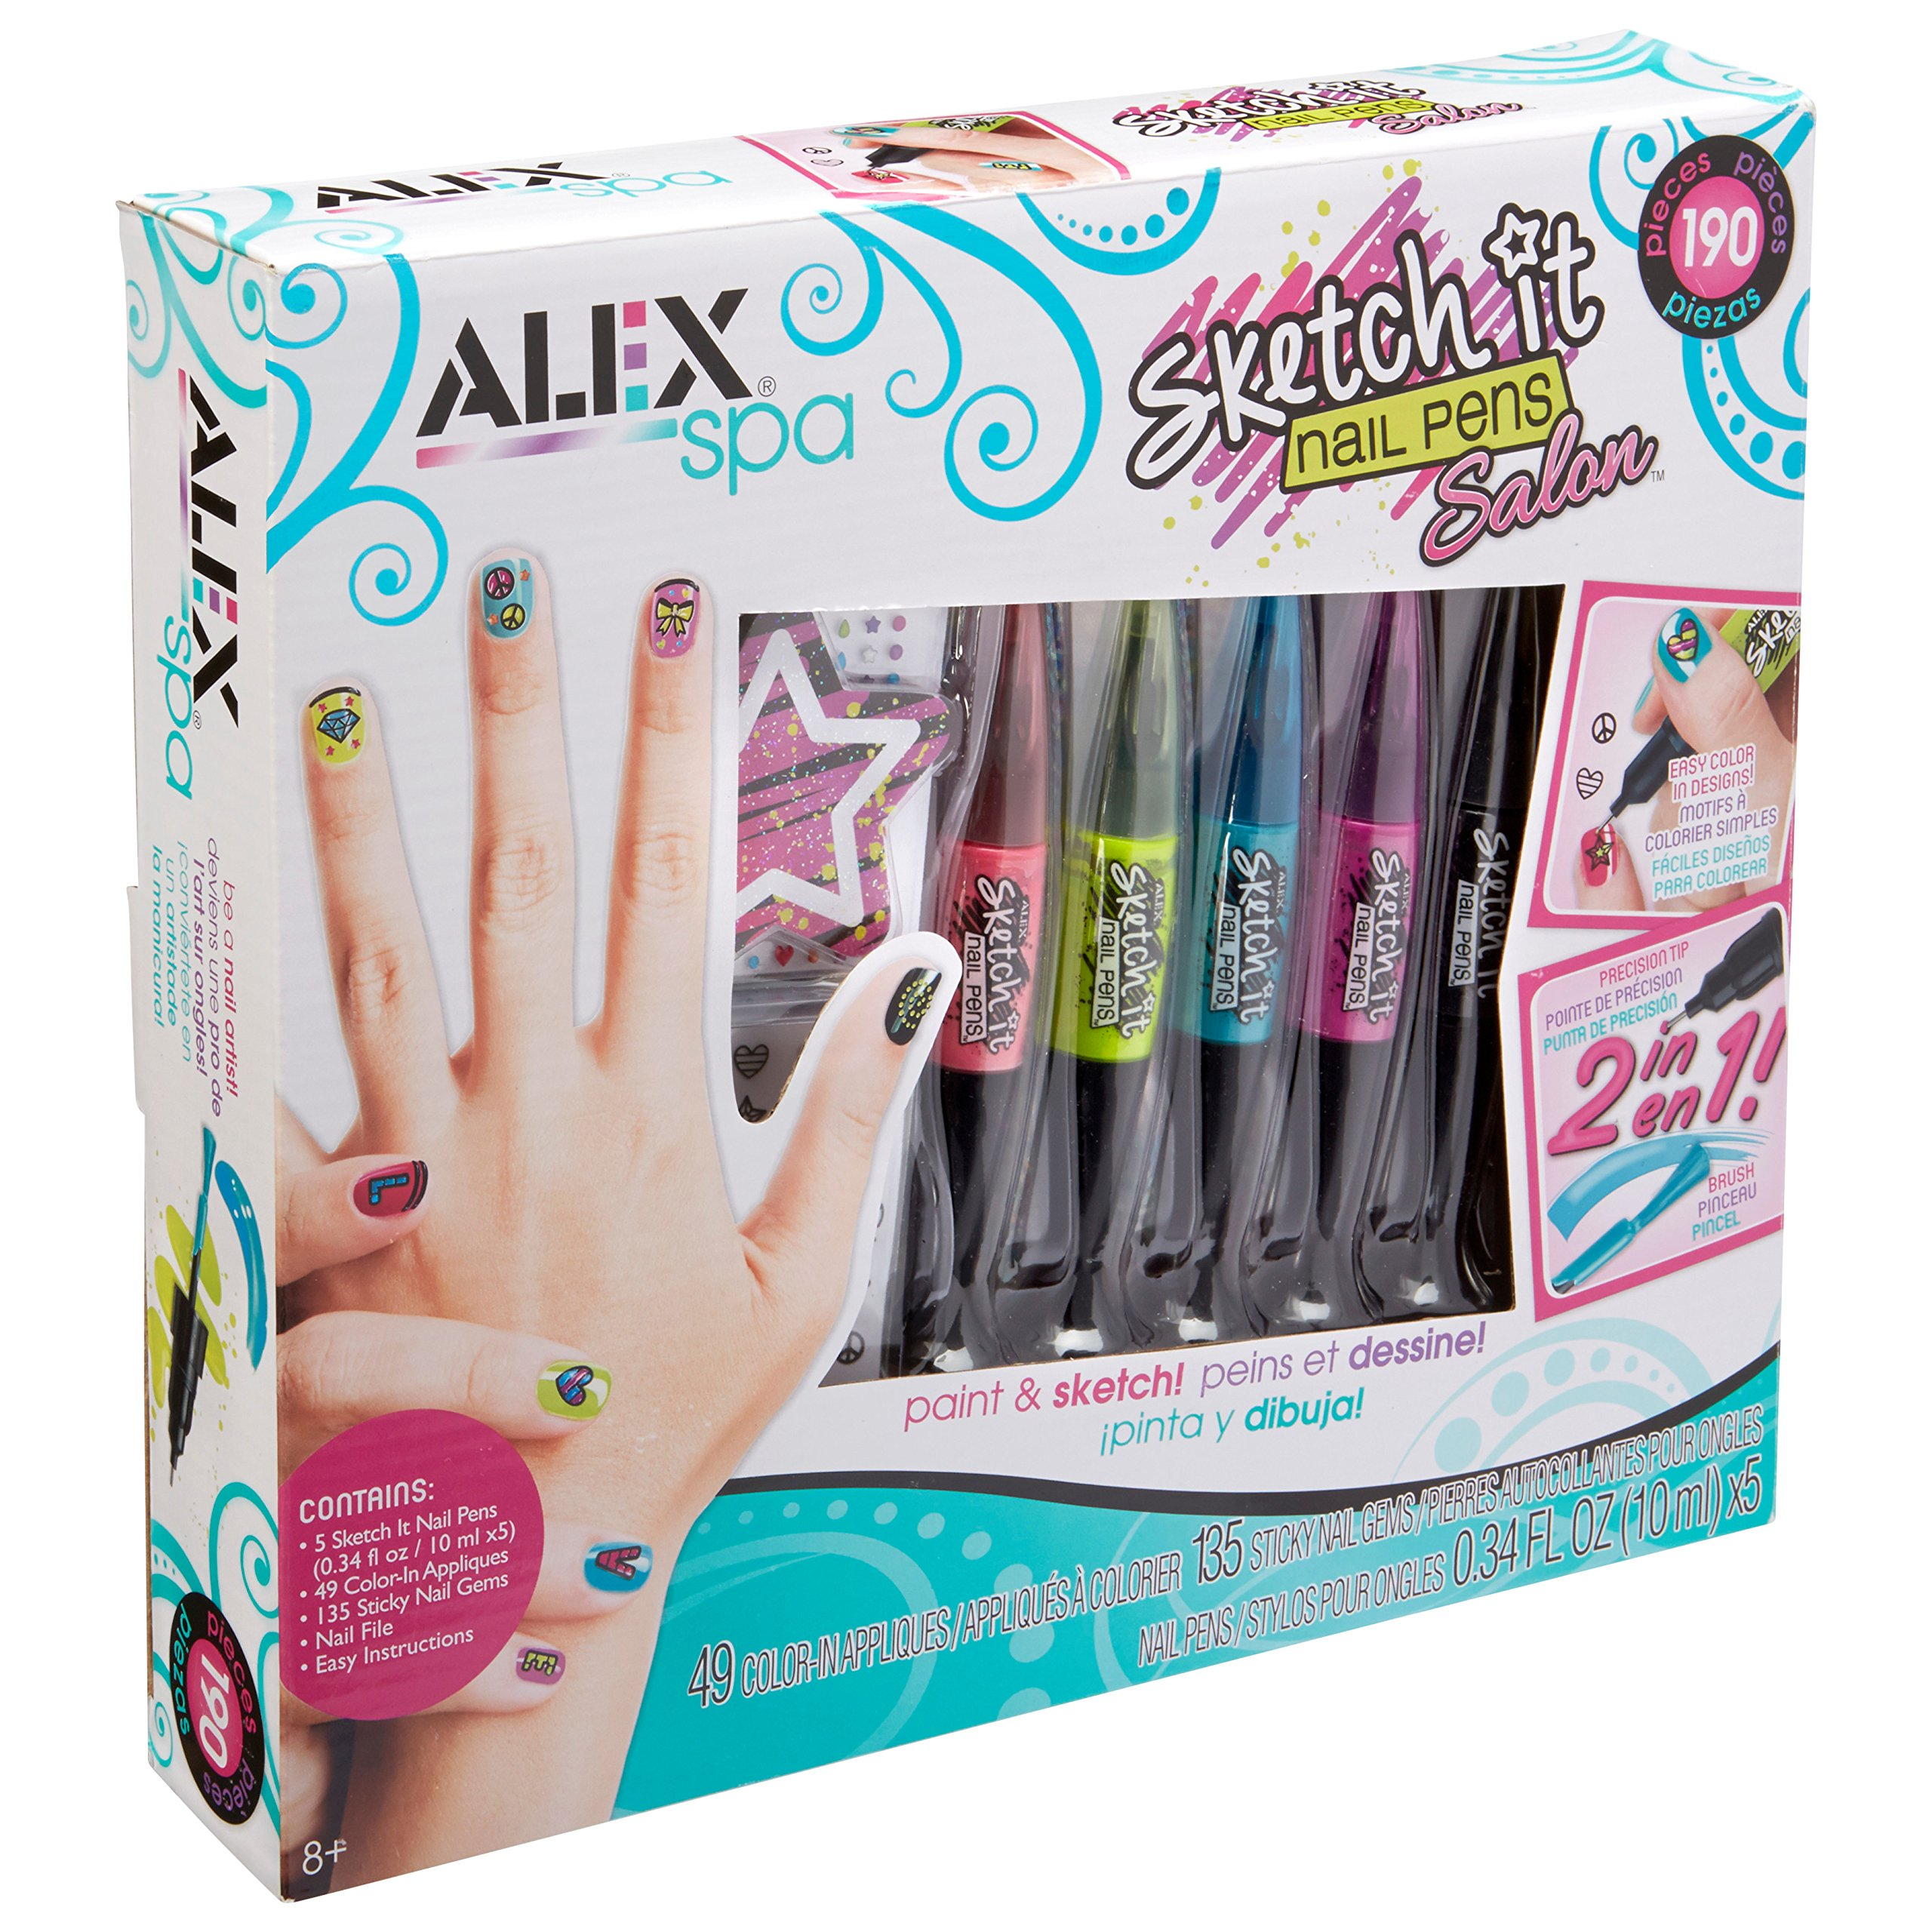 ALEX Spa Sketch It Nail Pens Salon product image